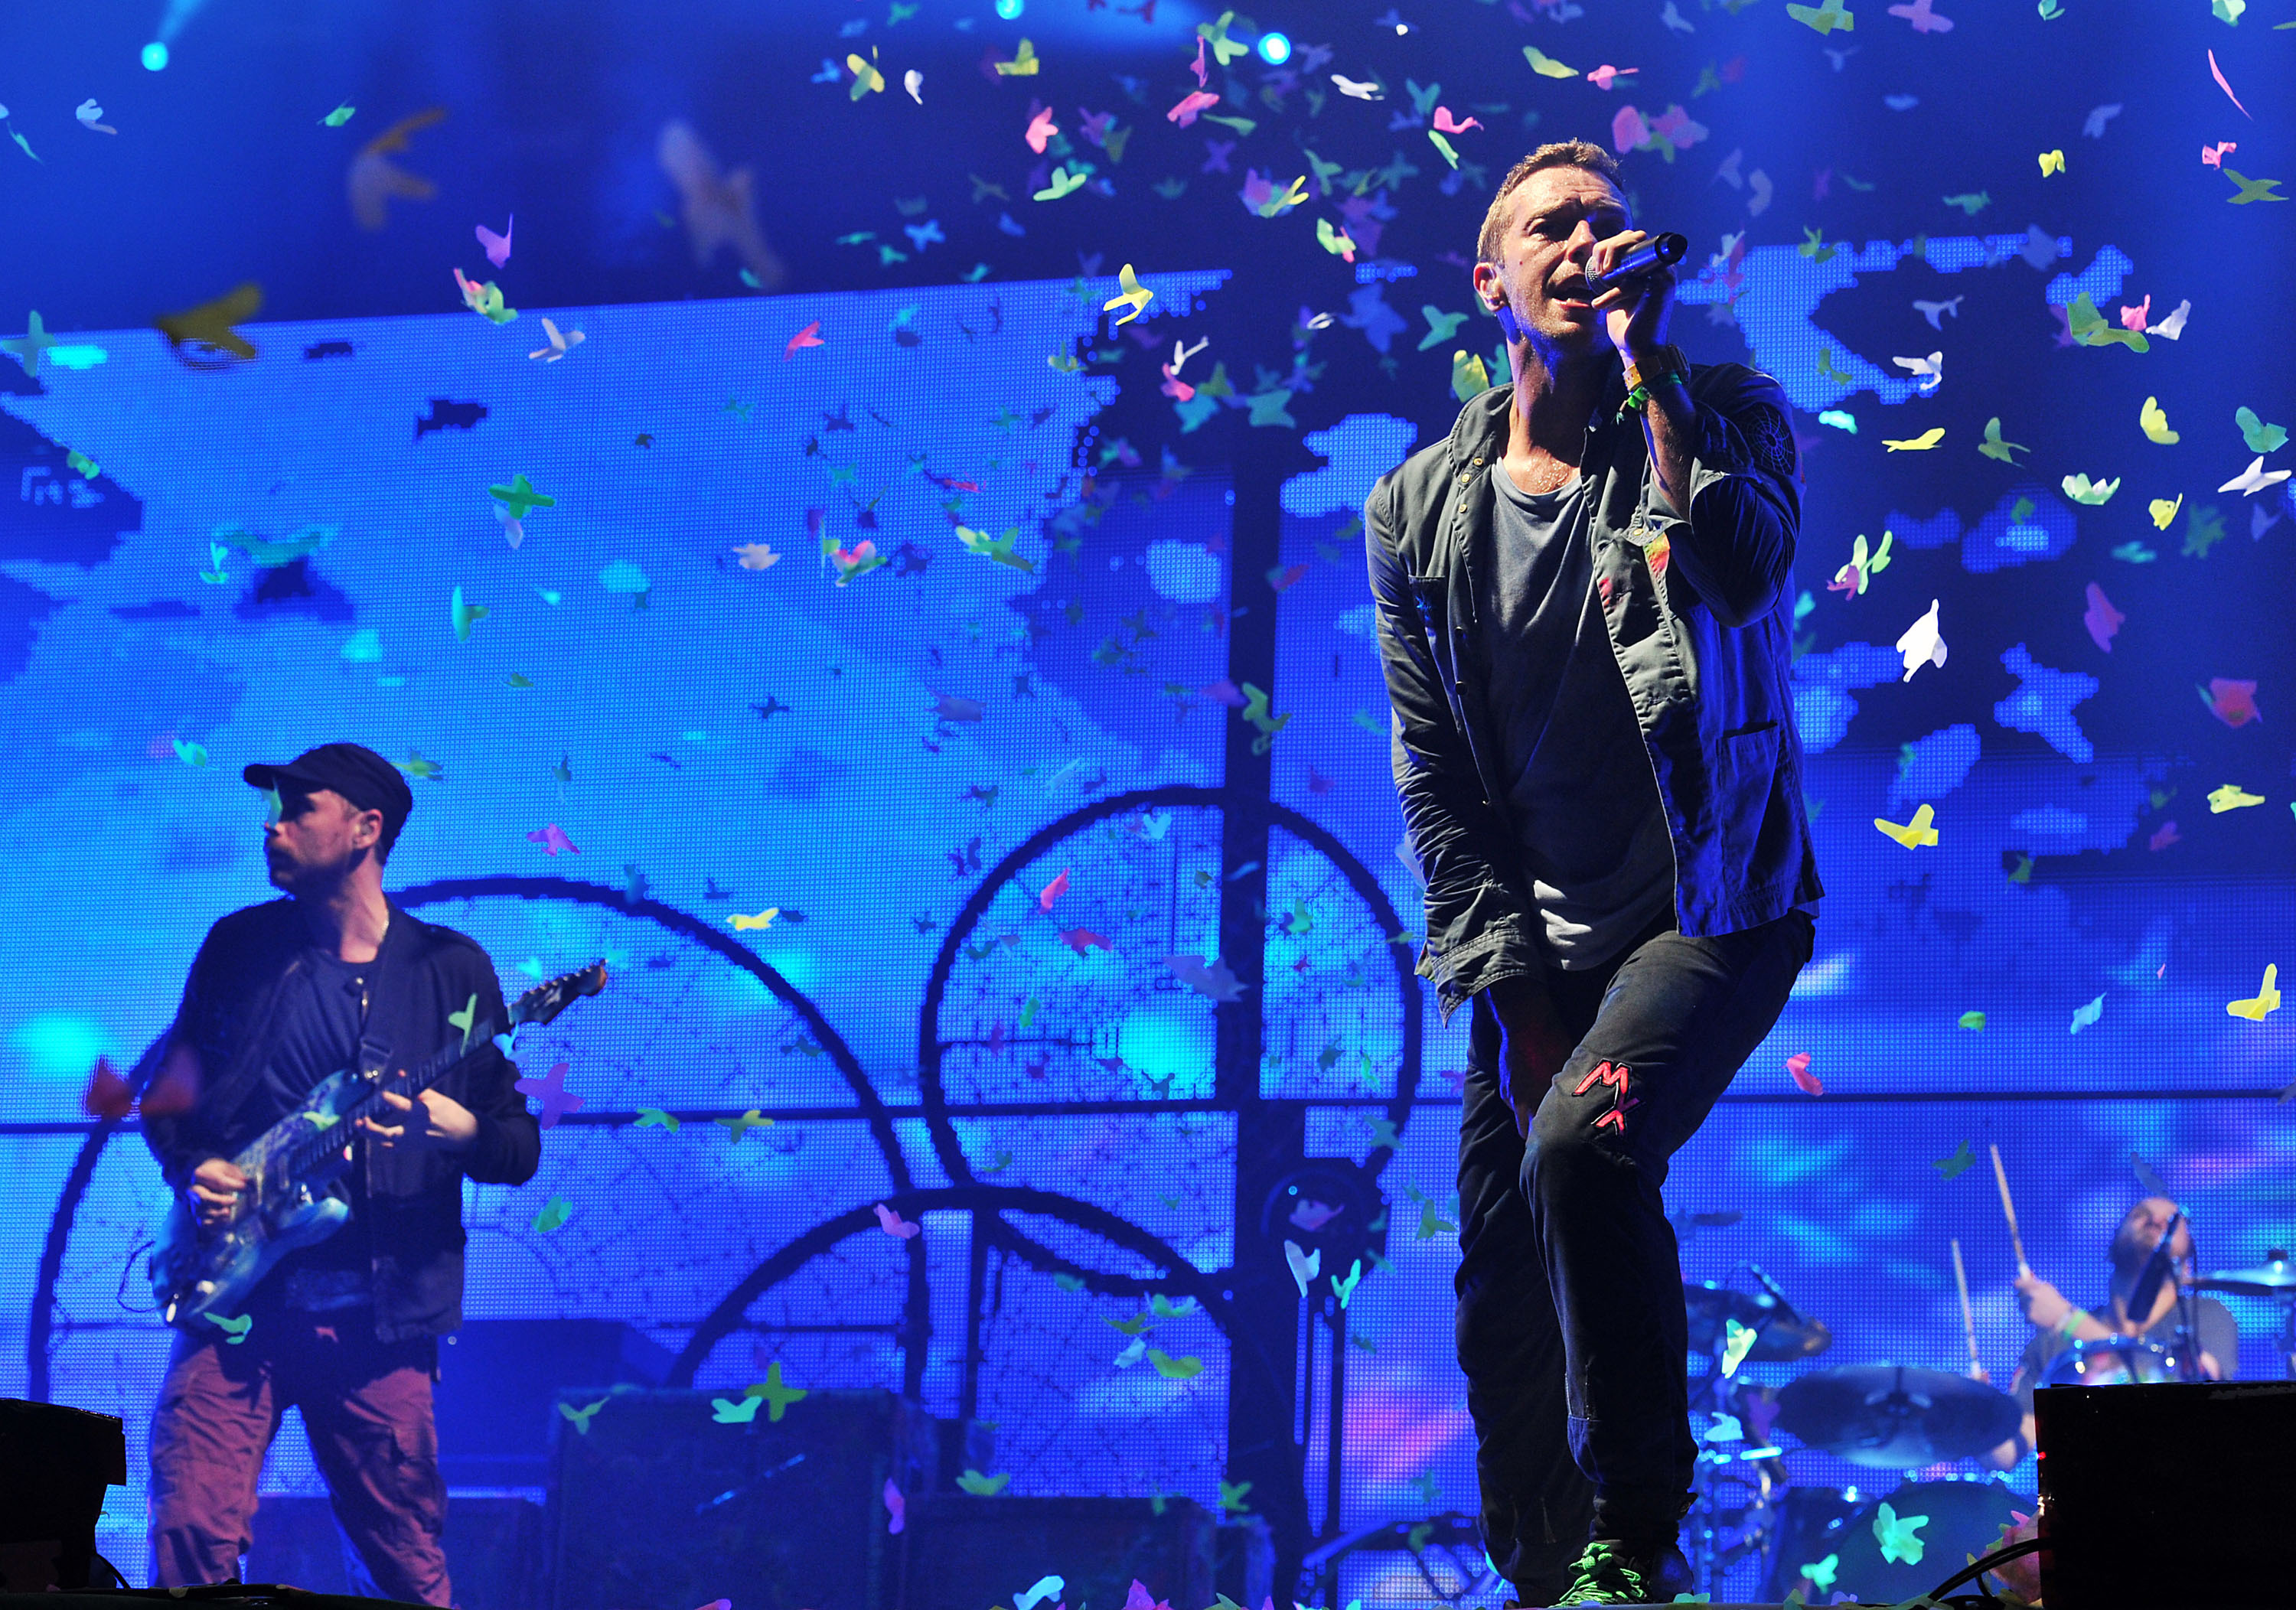 Coldplay Glastonbury 2011